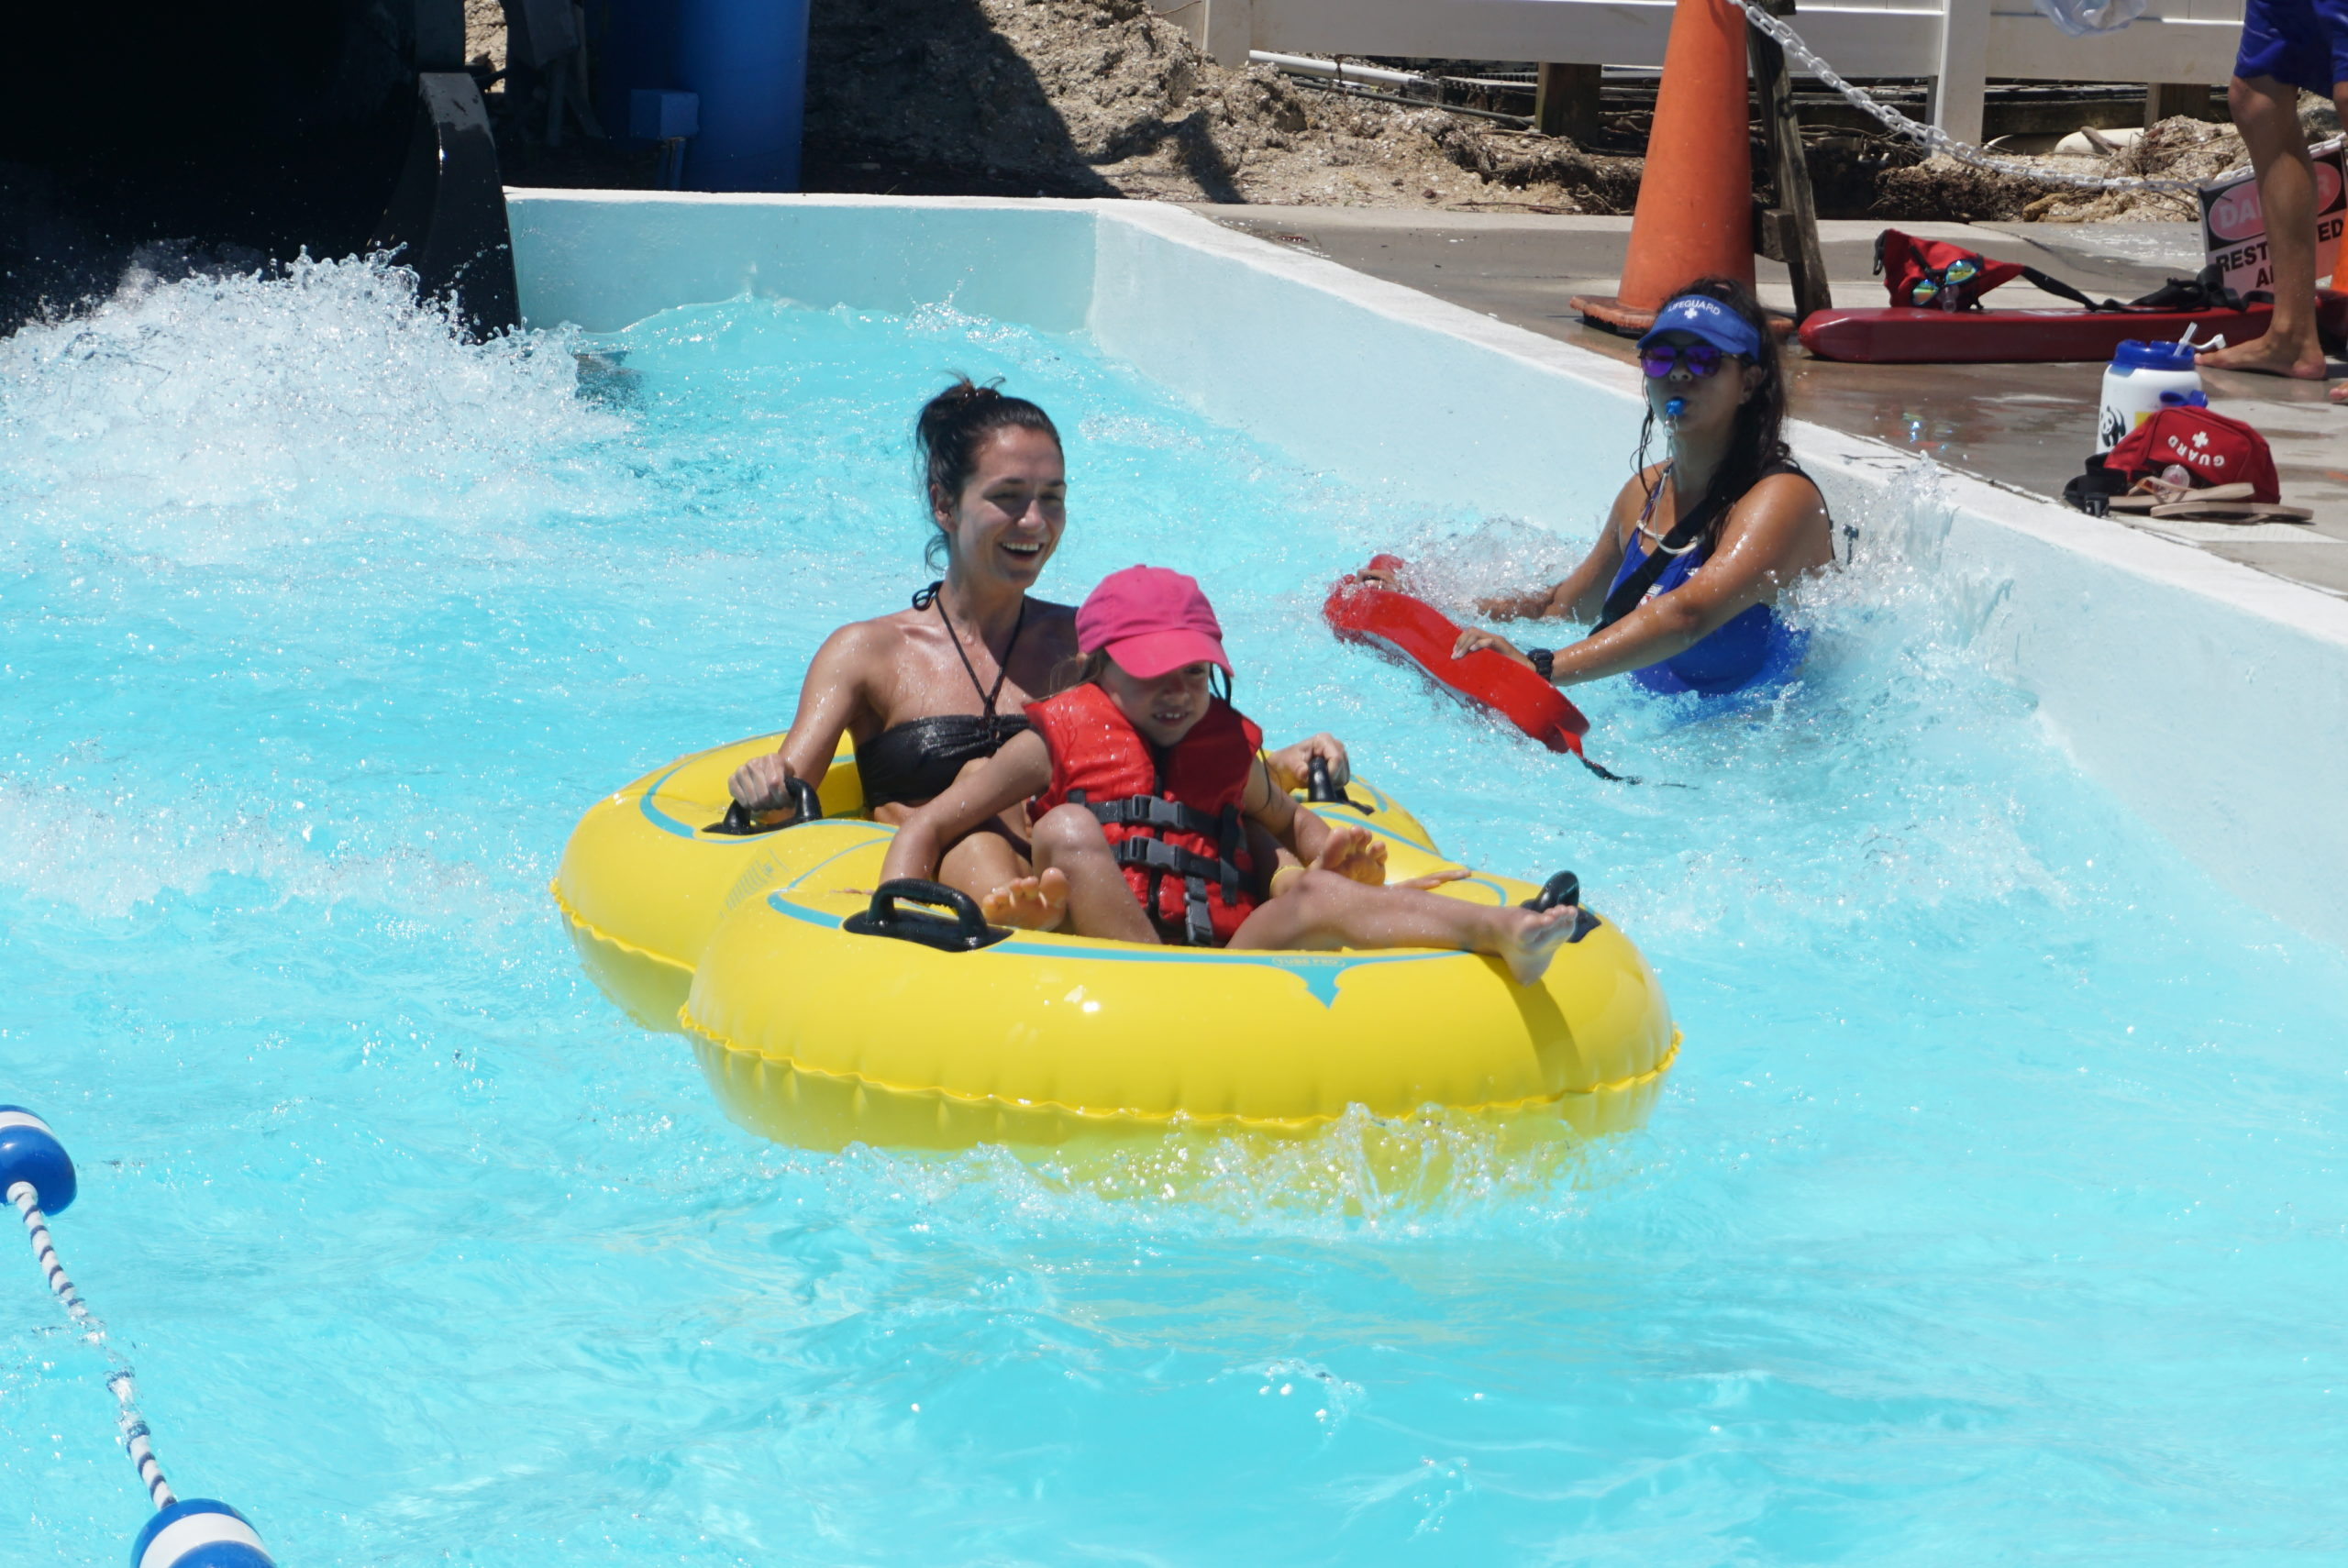 Moms admitted free July 11 – 12 at Sun Splash